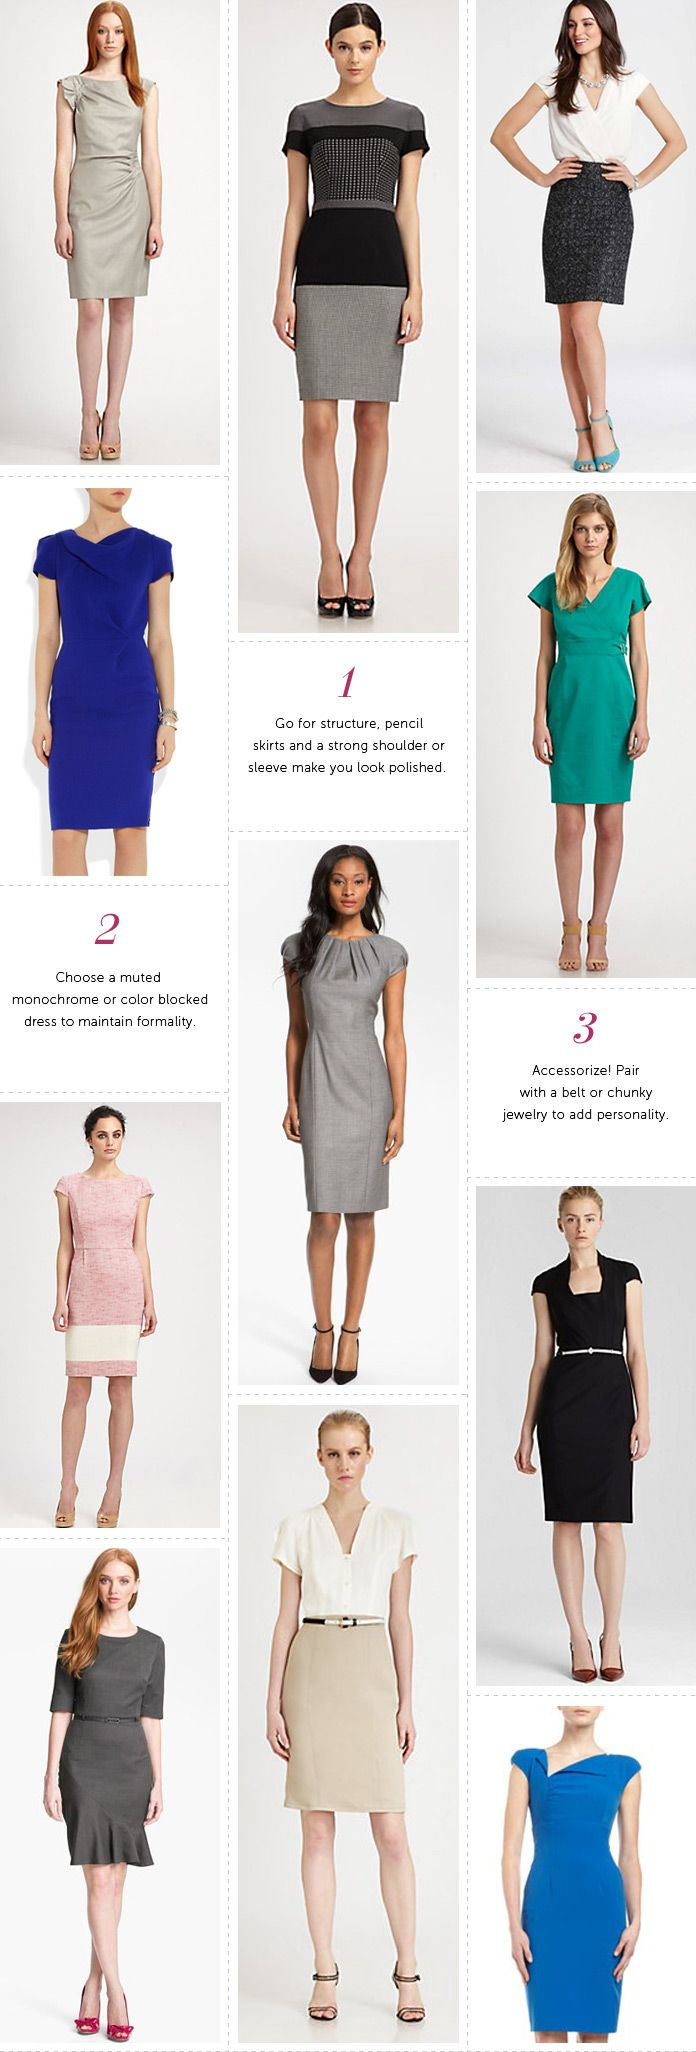 Professionelle: Power Dresses